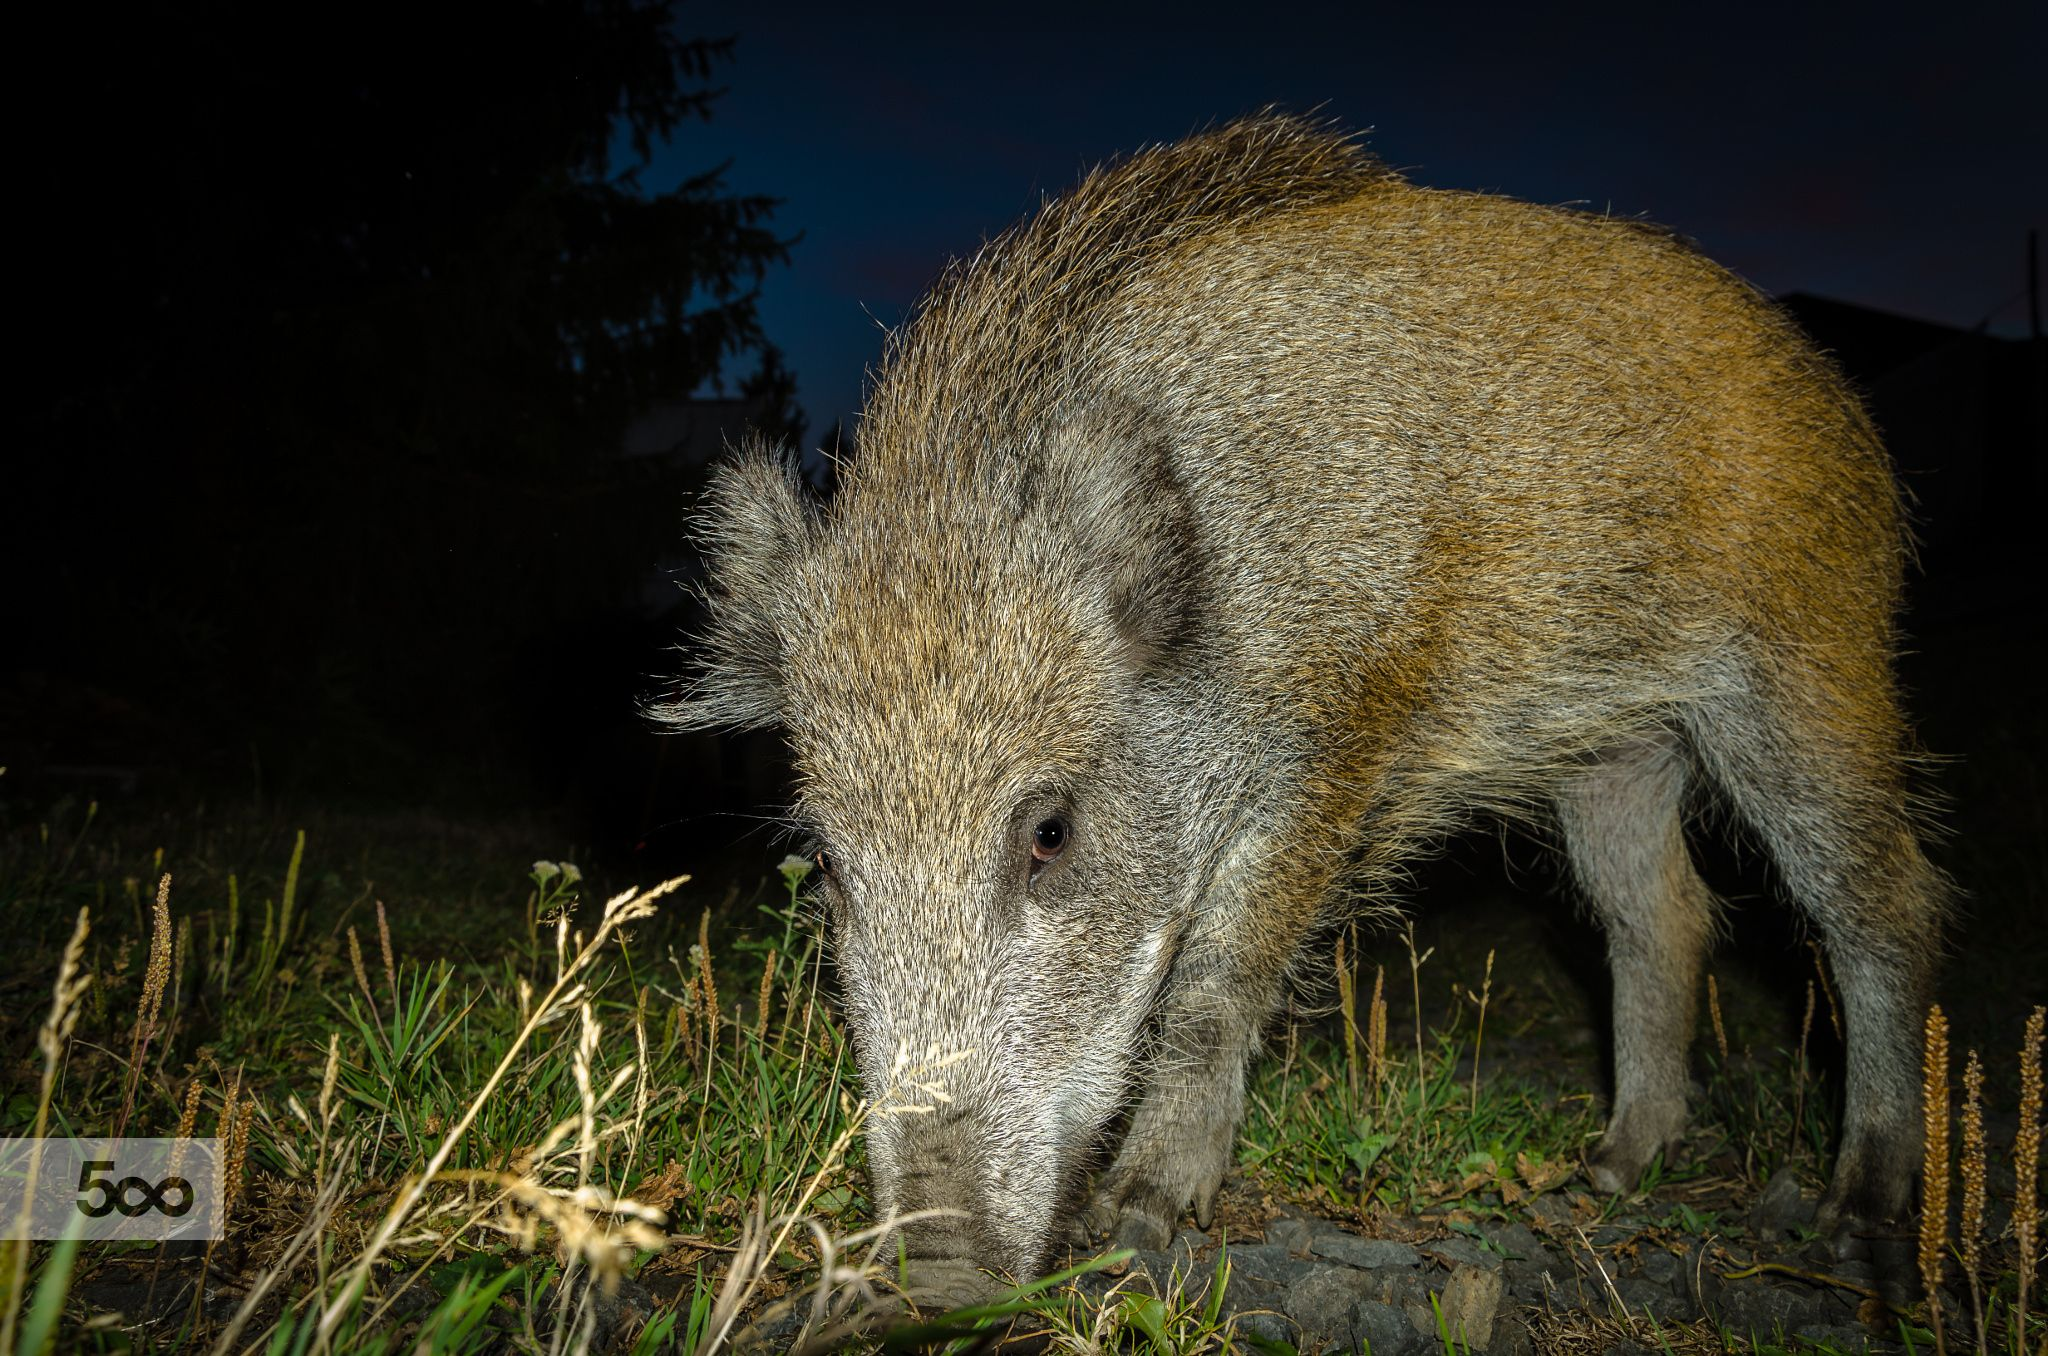 Wild boar by Marek Weisskopf on 500px